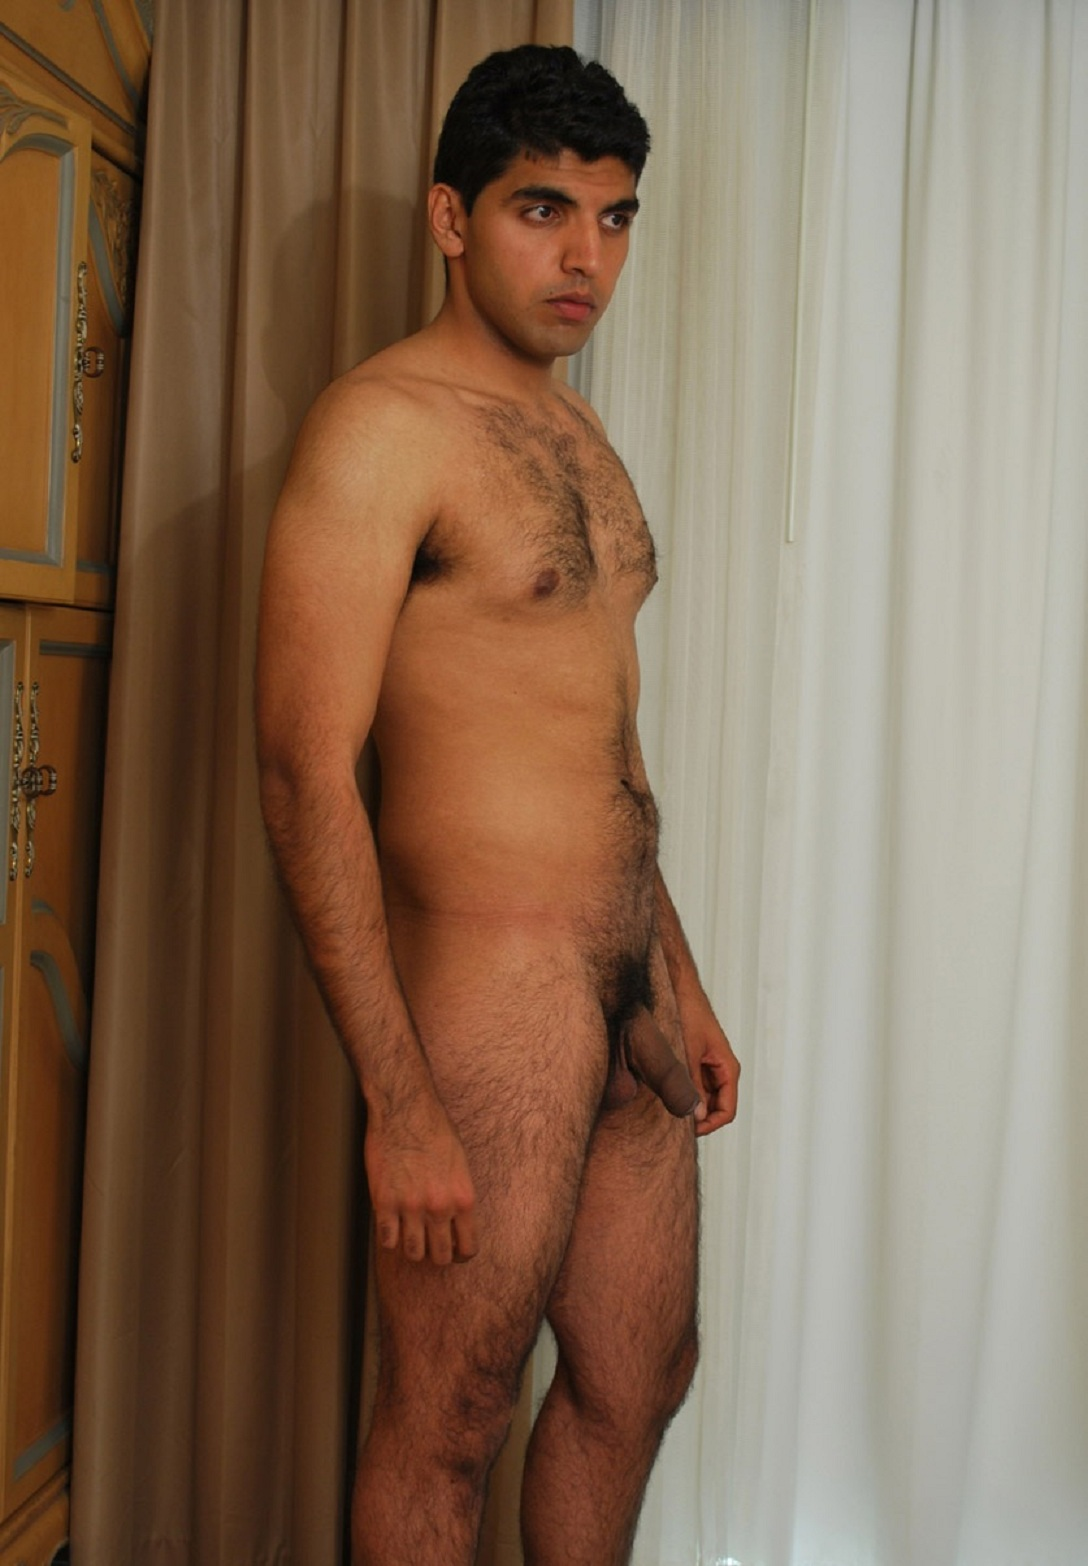 irons-indian-nude-gay-boy-photo-hansen-facial-hair